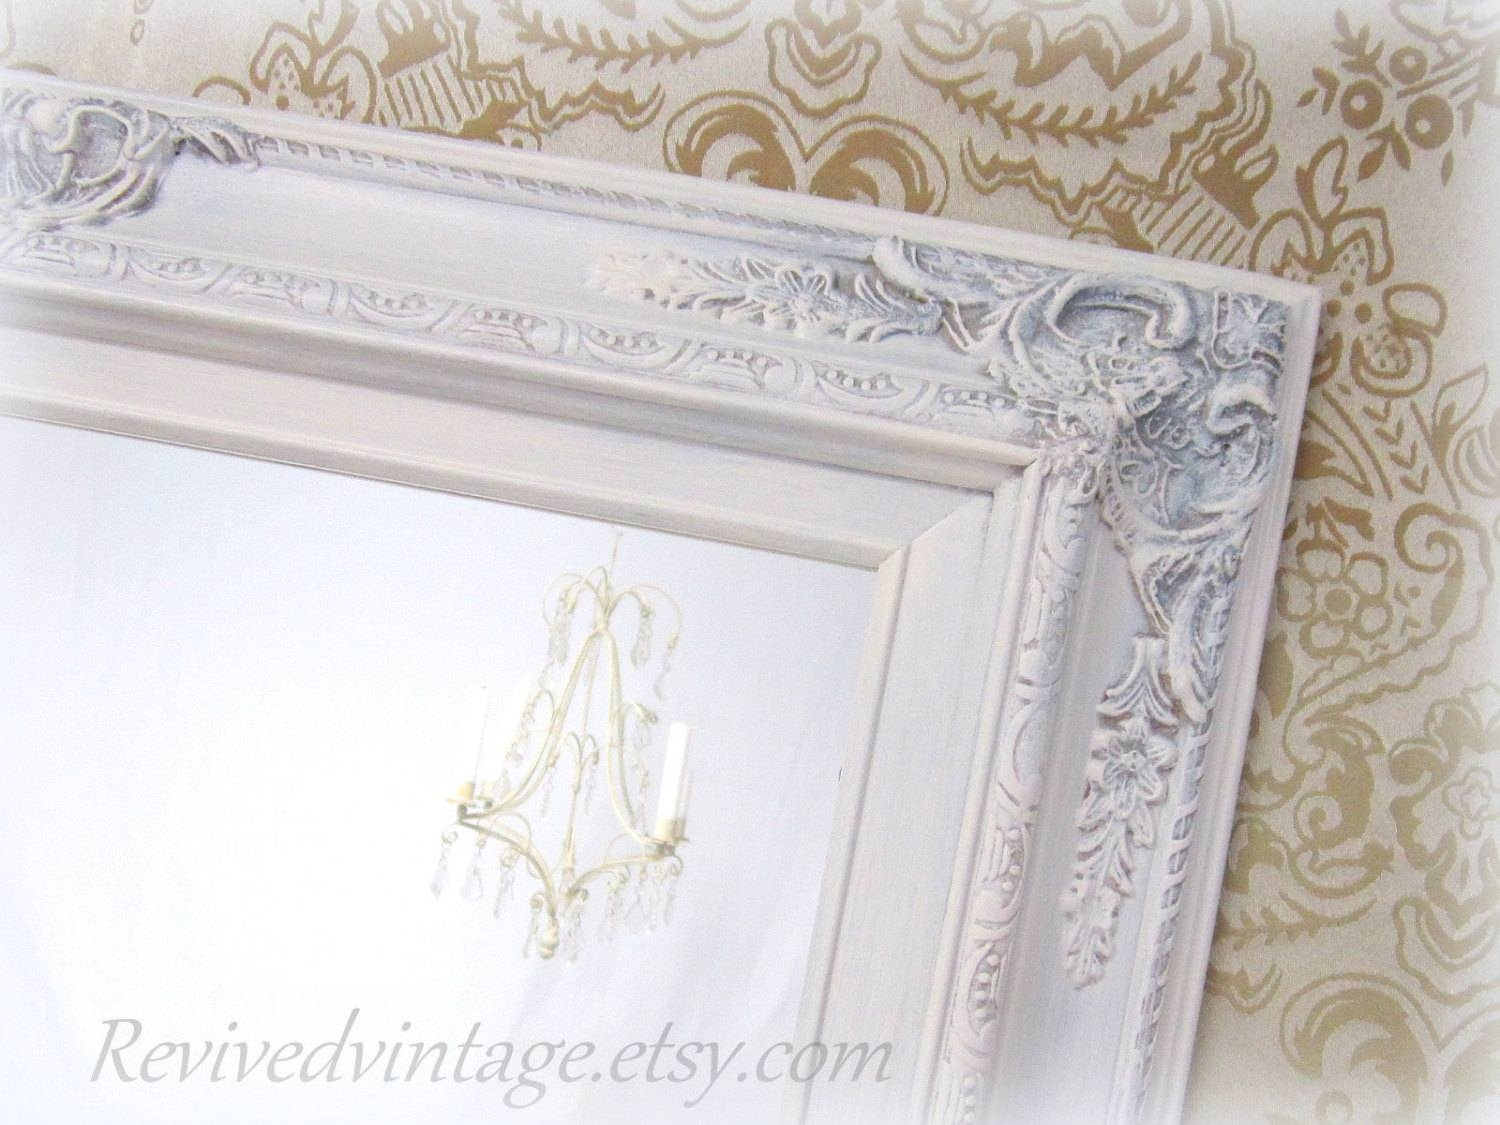 Shabby Chic Mirrors For Sale Baroque Framed Mirror inside French Shabby Chic Mirrors (Image 22 of 25)